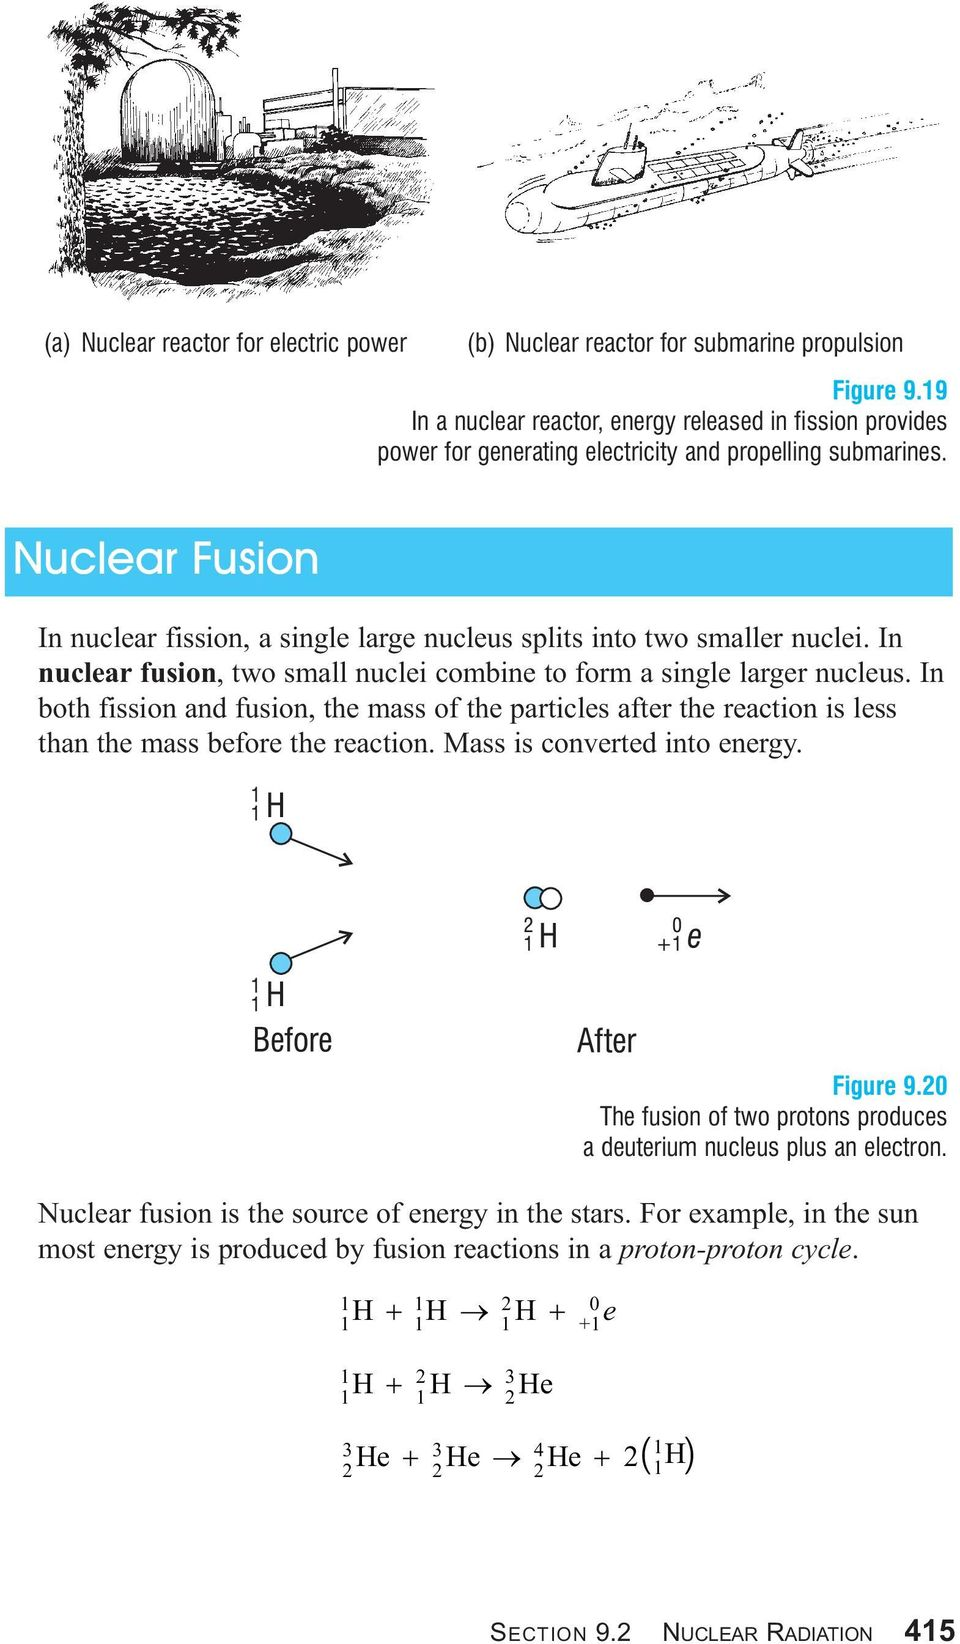 Nuclear Fusion In nuclear fission, a single large nucleus splits into two smaller nuclei. In nuclear fusion, two small nuclei combine to form a single larger nucleus.